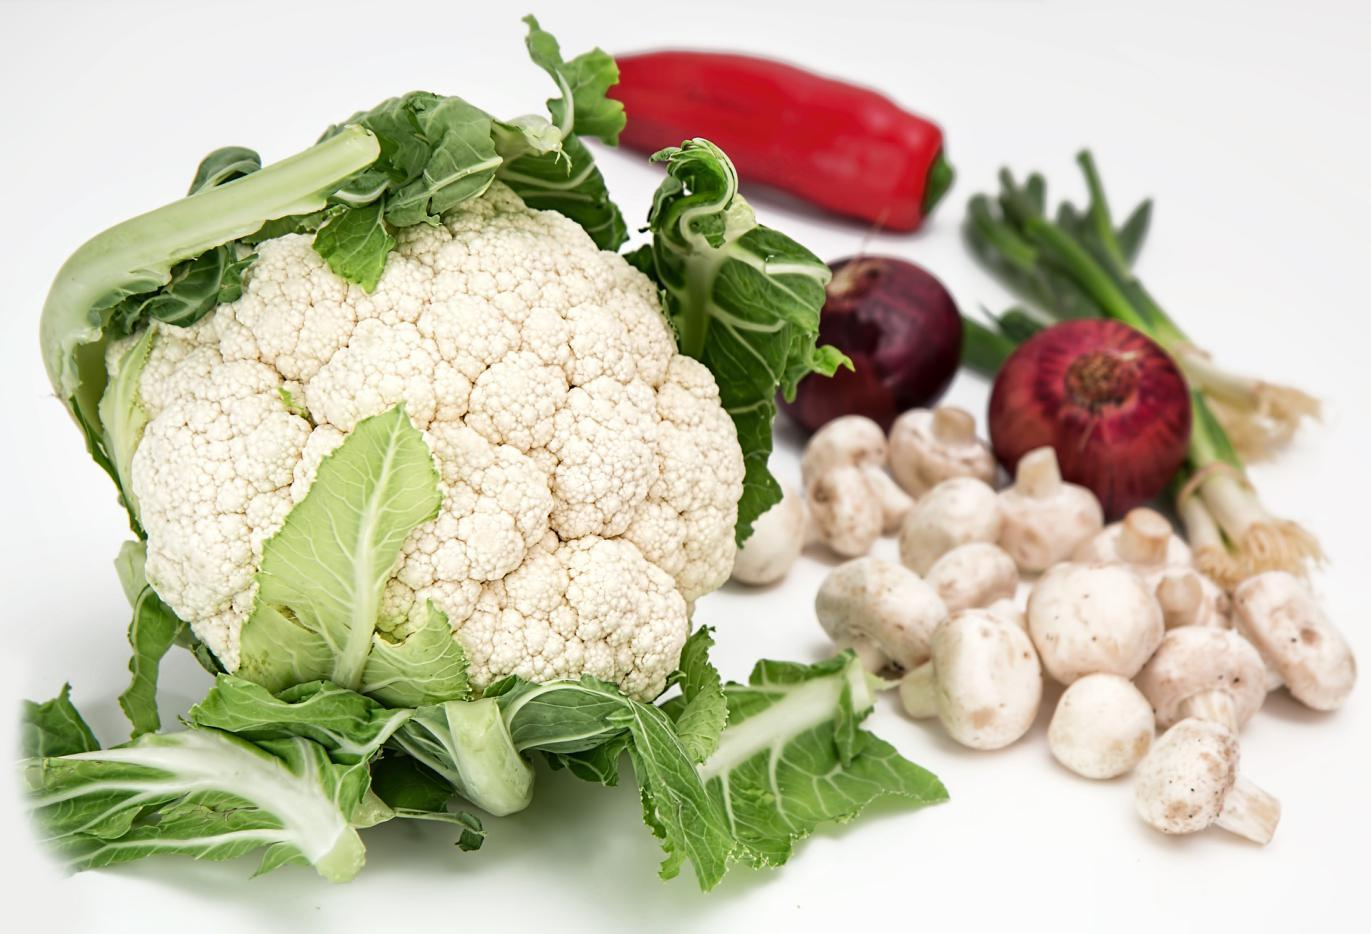 cauliflower-1676194_1920